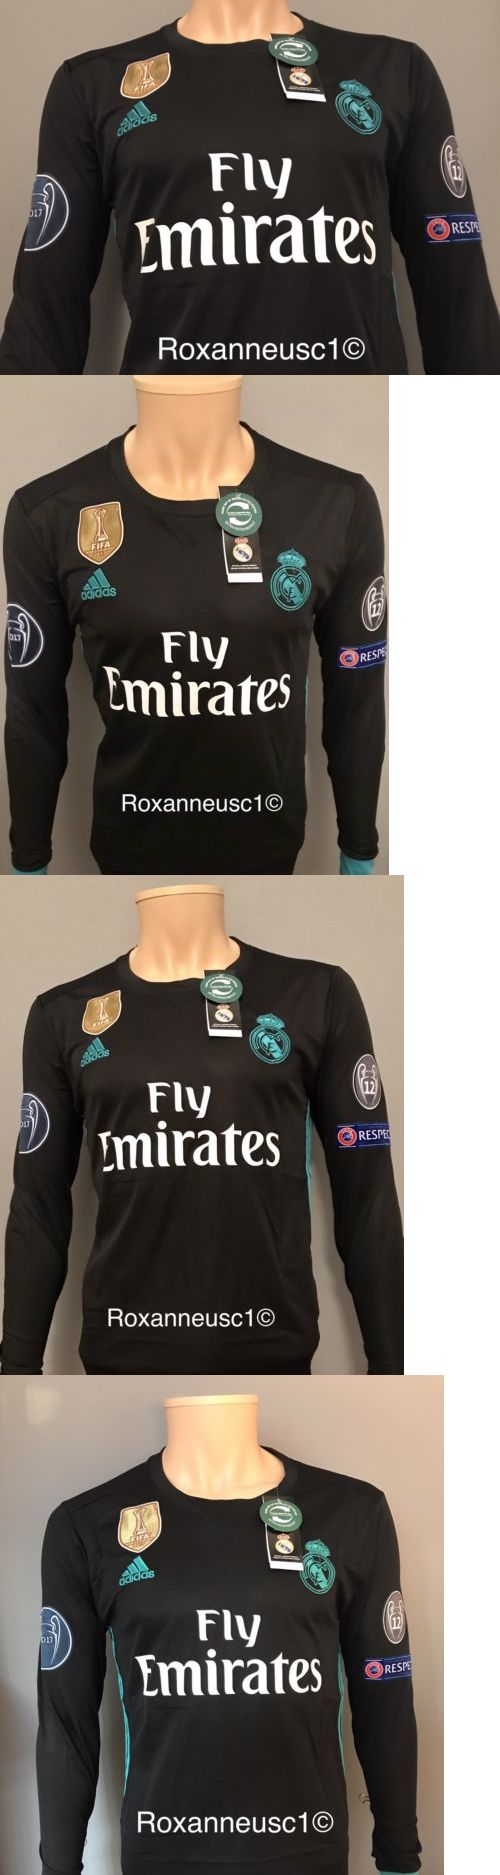 Keylor navas pays tribute to cristiano ronaldo sports mole - Men 123490 Cristiano Ronaldo 2017 2018 Real Madrid Long Sleeve Away Jersey Champions League